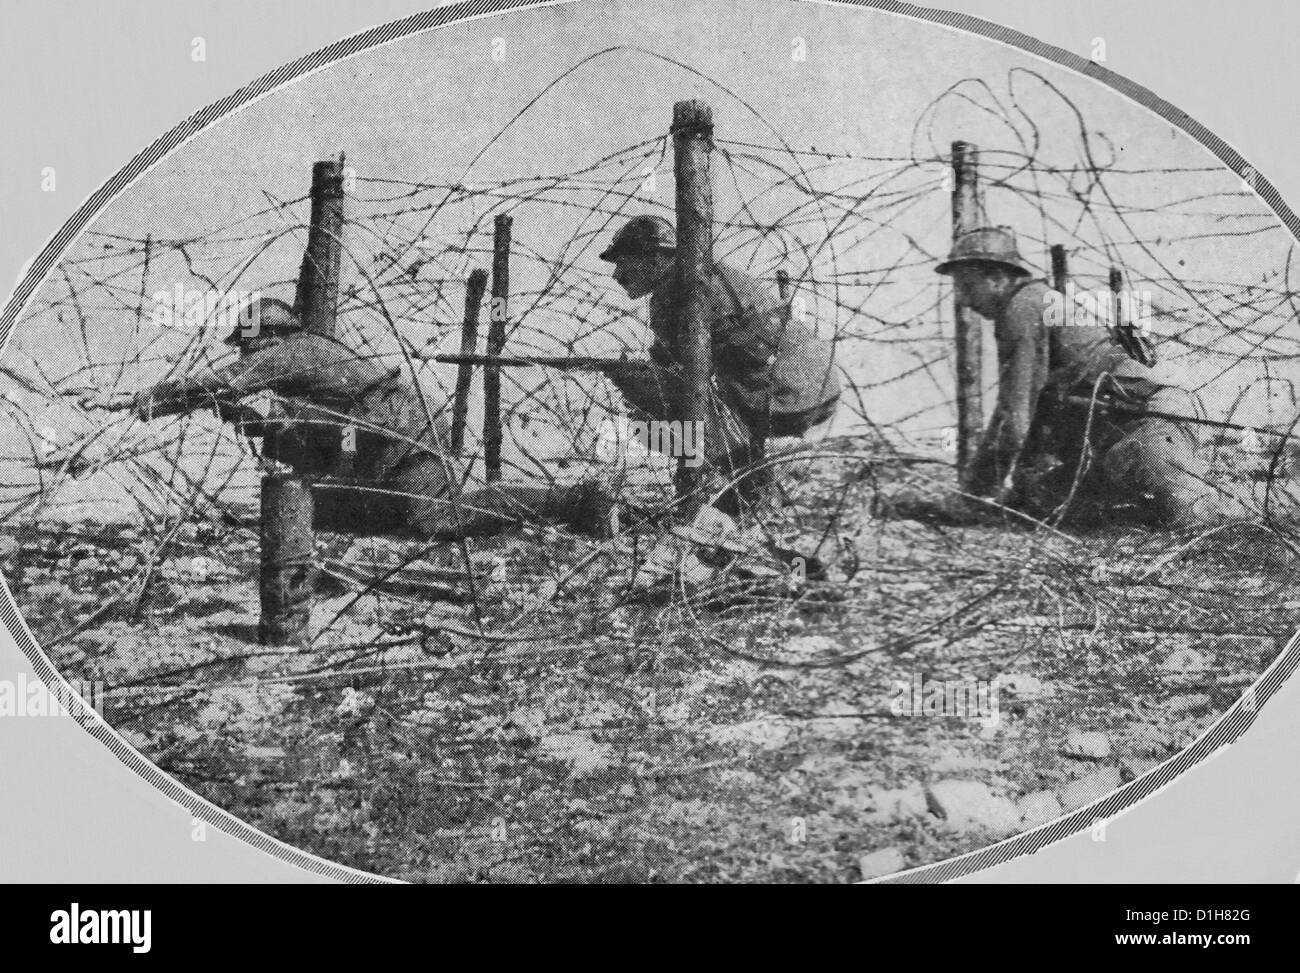 Working through barbed wire - French scouts advancing through enemy entanglements during World War I, 1917 - Stock Image